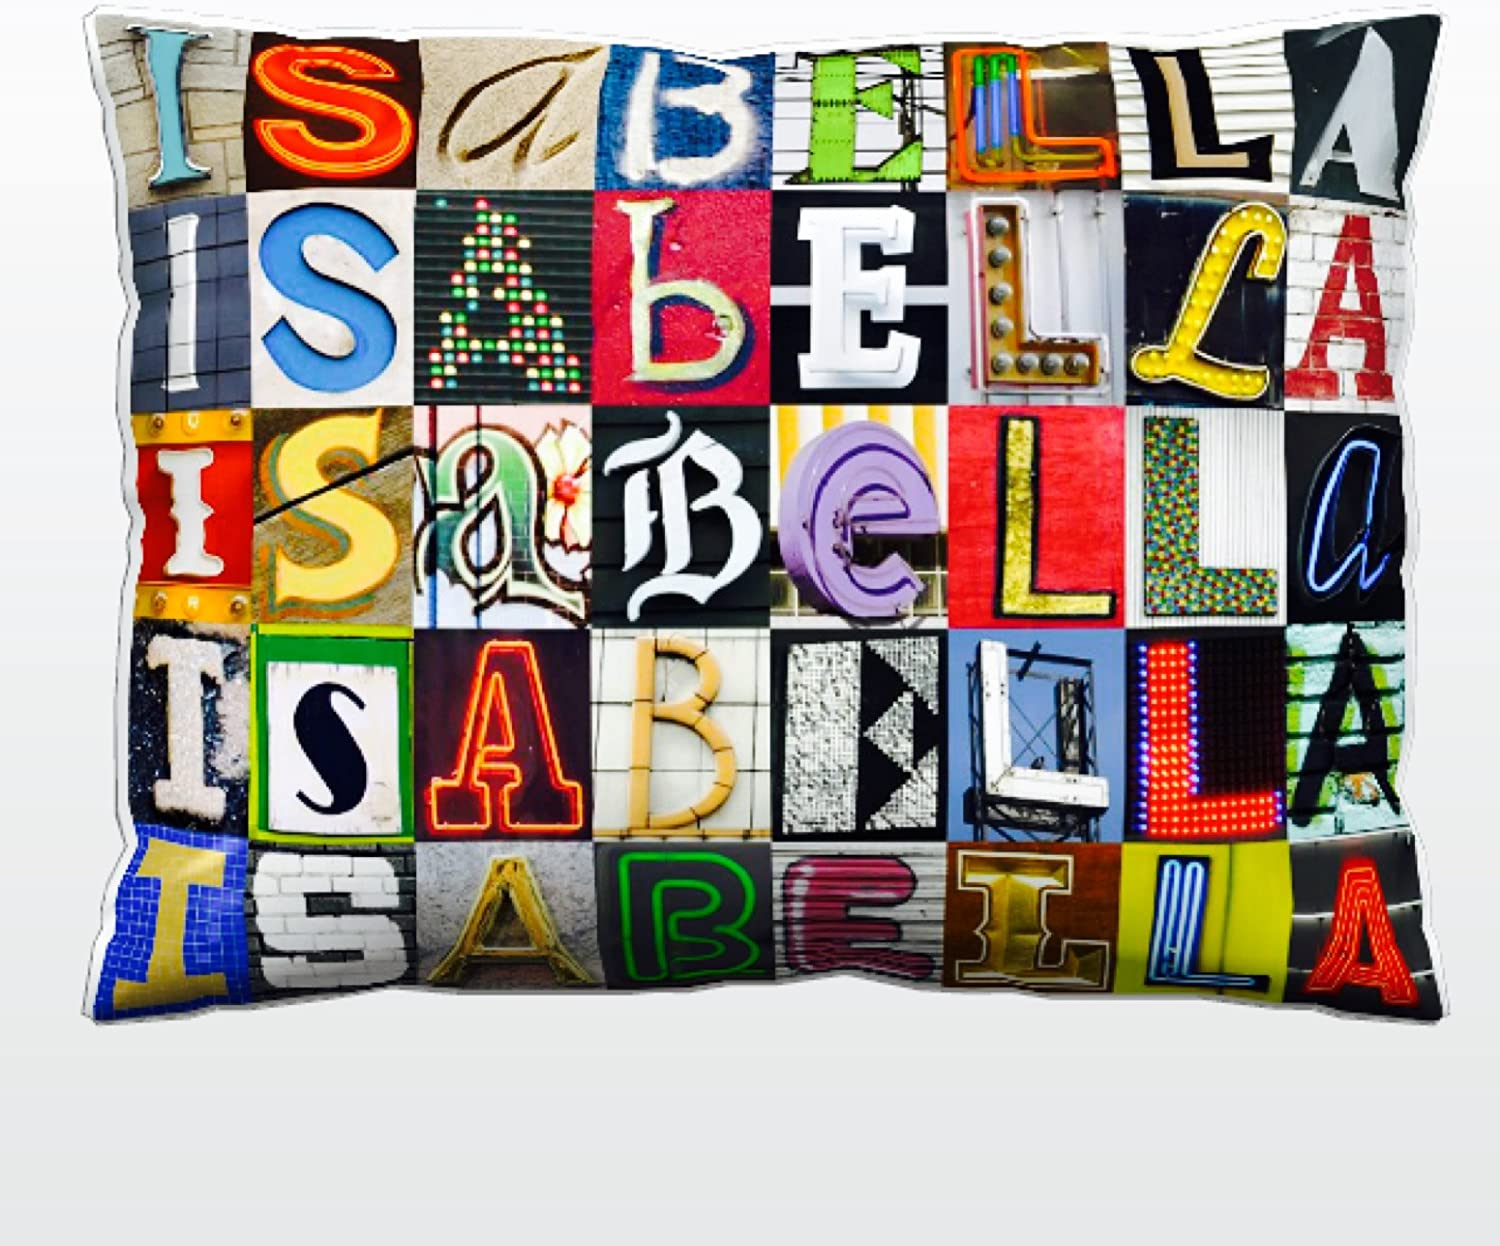 Personalized Pillow featuring the Ultra-Cheap Deals name letter sign p in ISABELLA Luxury goods